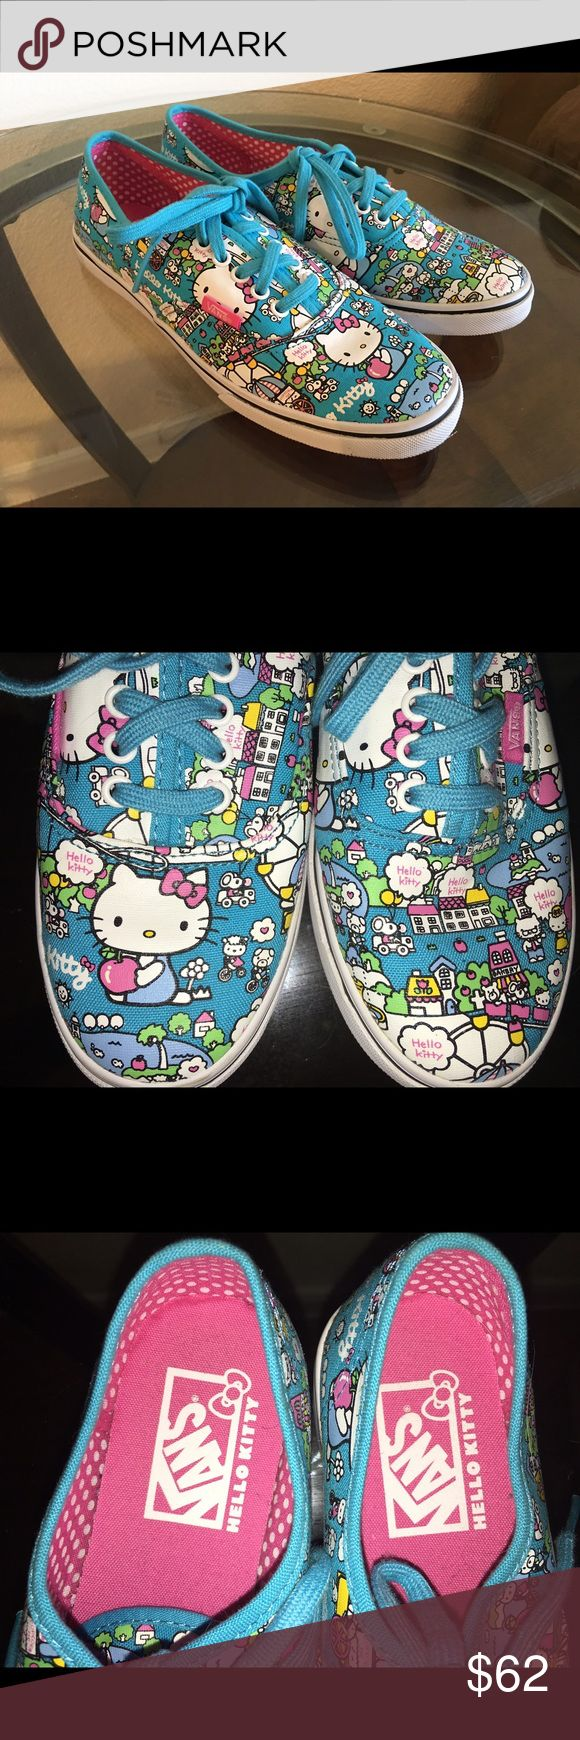 Hello Kitty Vans Limited edition hello kitty vans. These are sold out and very rare. These are practically new I only wore them inside my house. I looove these but just not my style. These are super adorable and need a new home! :) Vans Shoes Sneakers